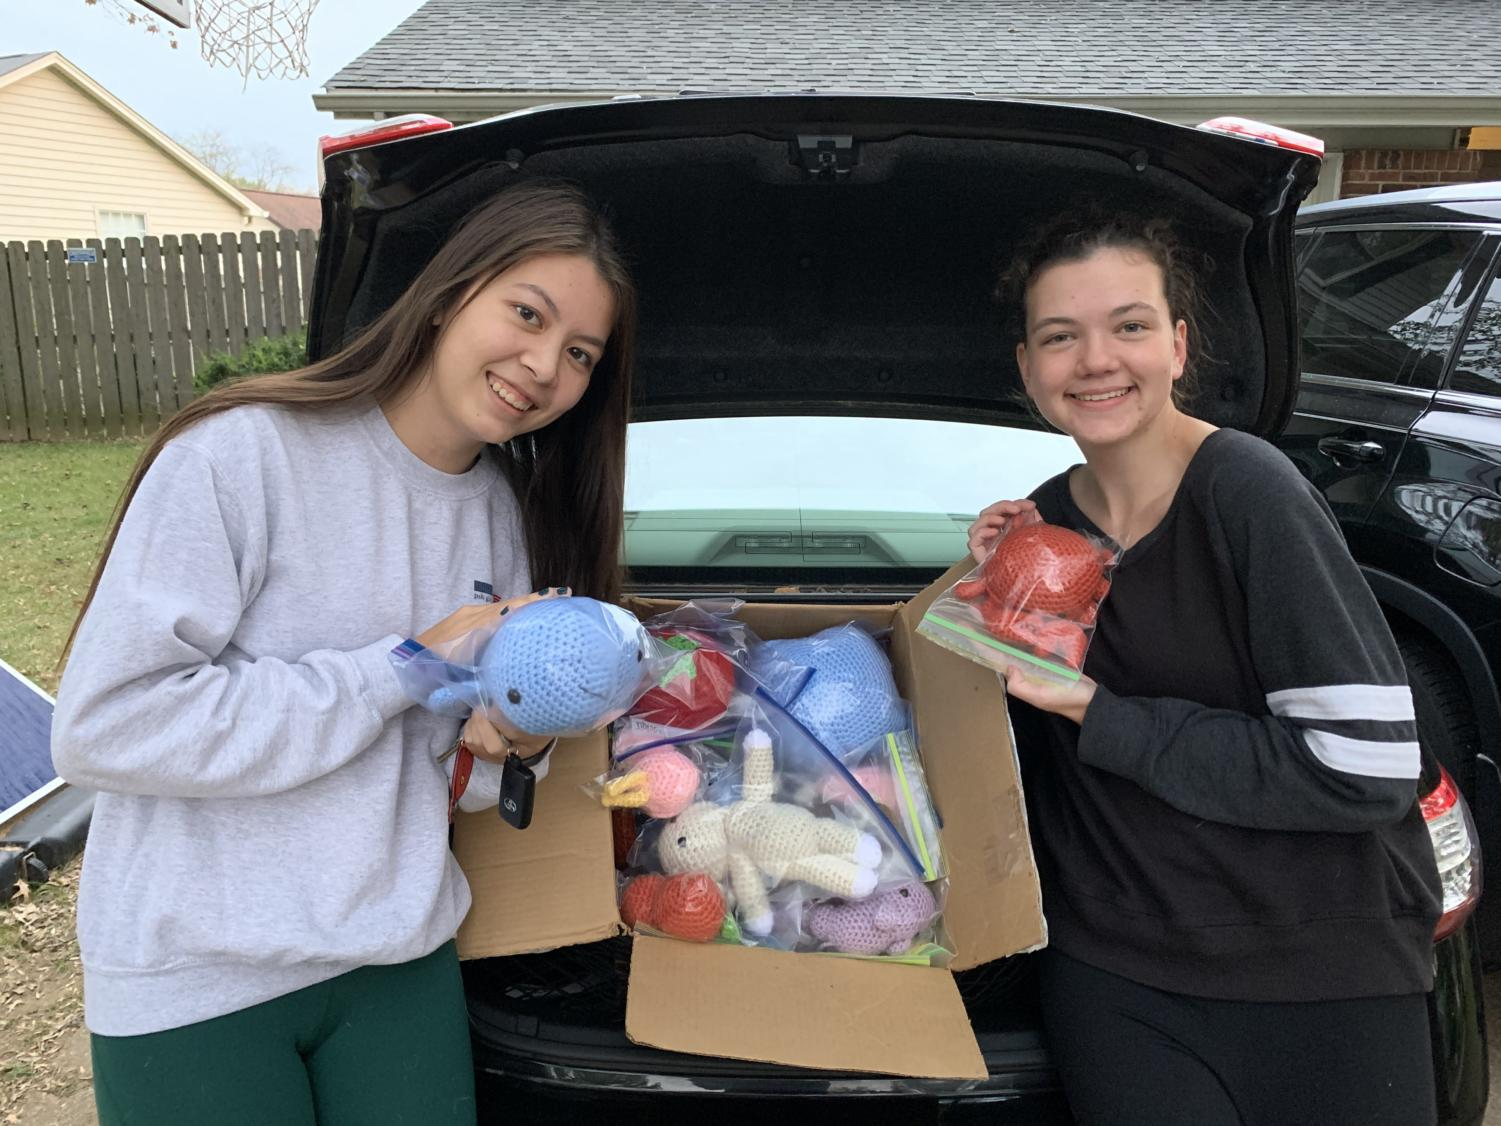 Seniors Alexa Spoerle and Katie Wilson display two of the many homemade stuffed animals they've stitched for sick children.